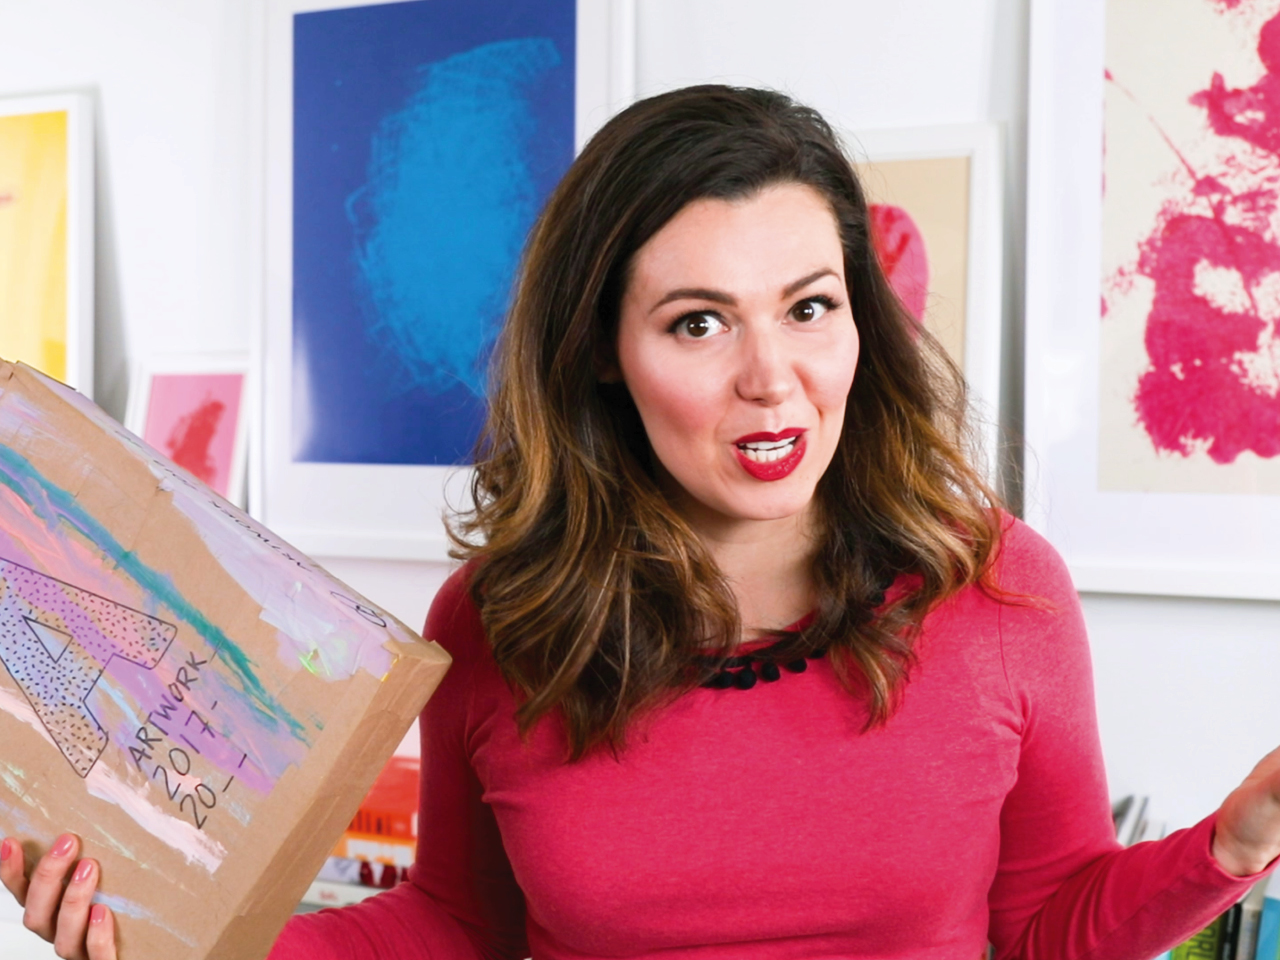 Kids' artwork: How to manage, store and organize it